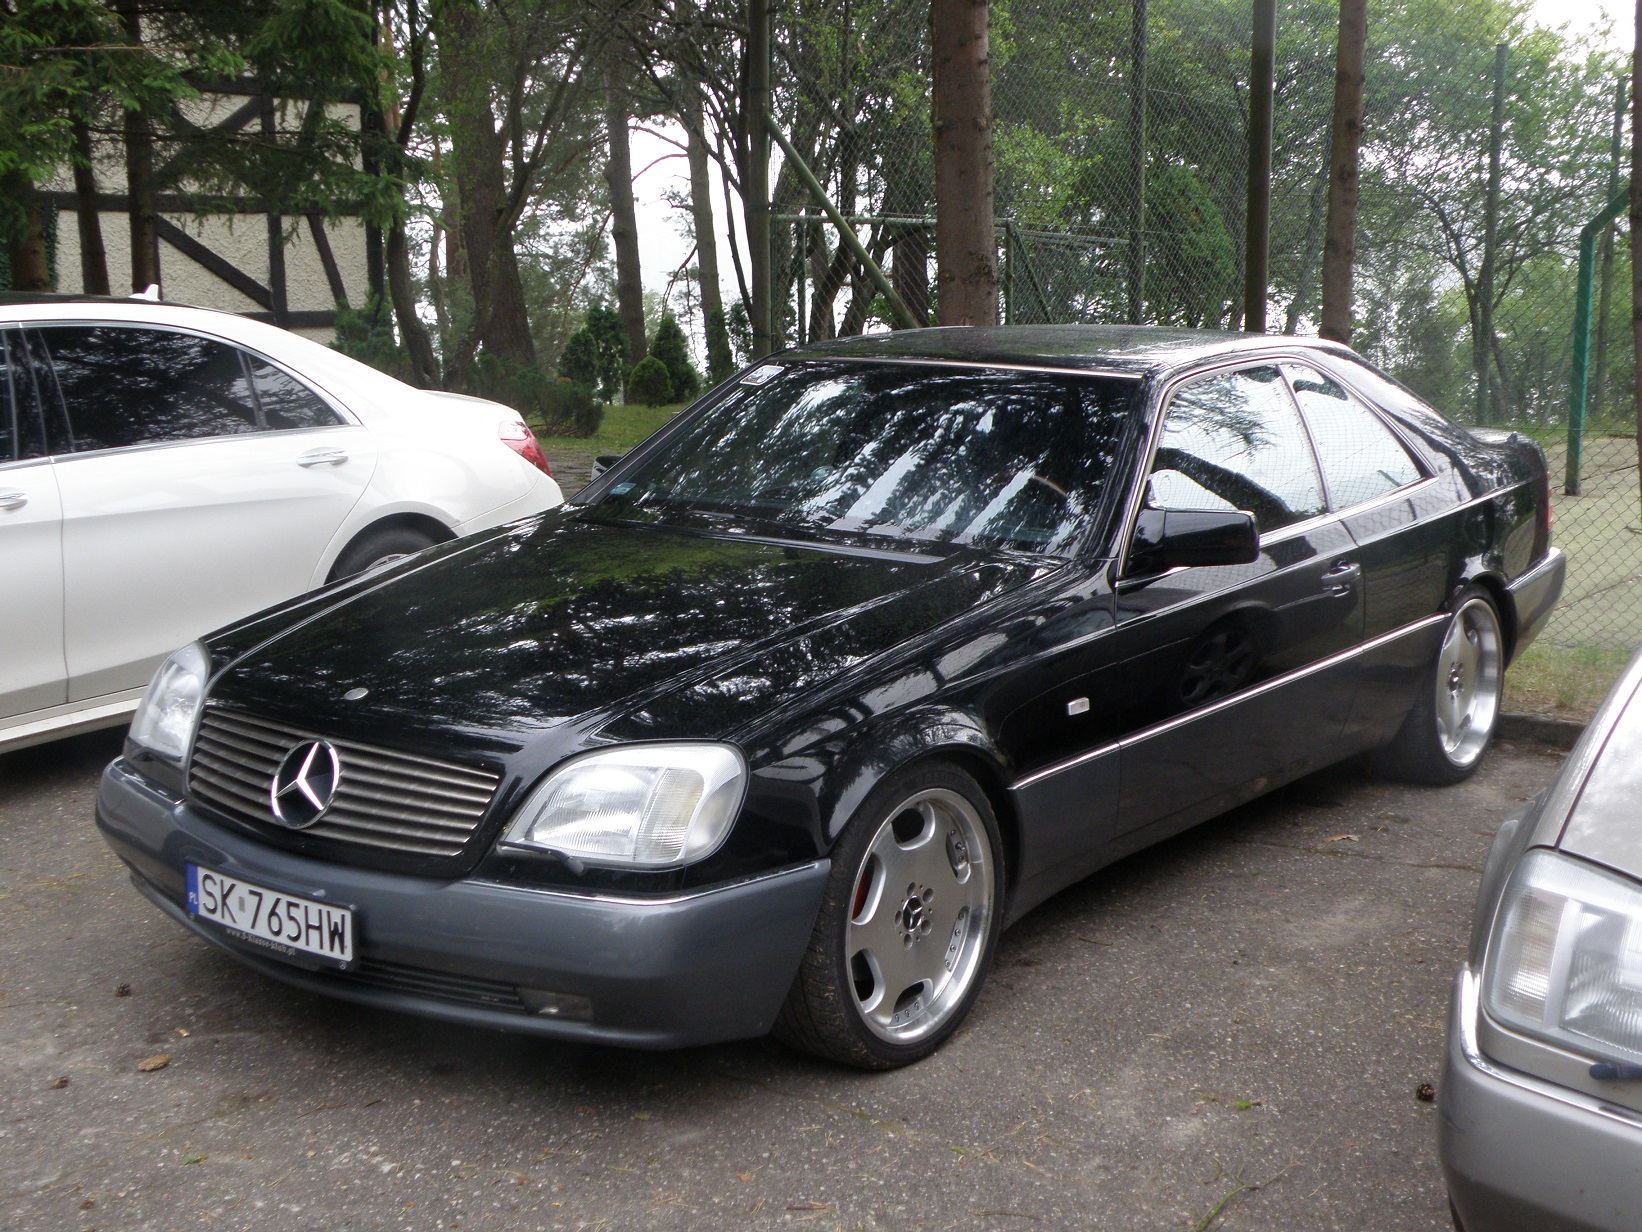 http://124coupe.pl/hosting/images/1498983876.jpg